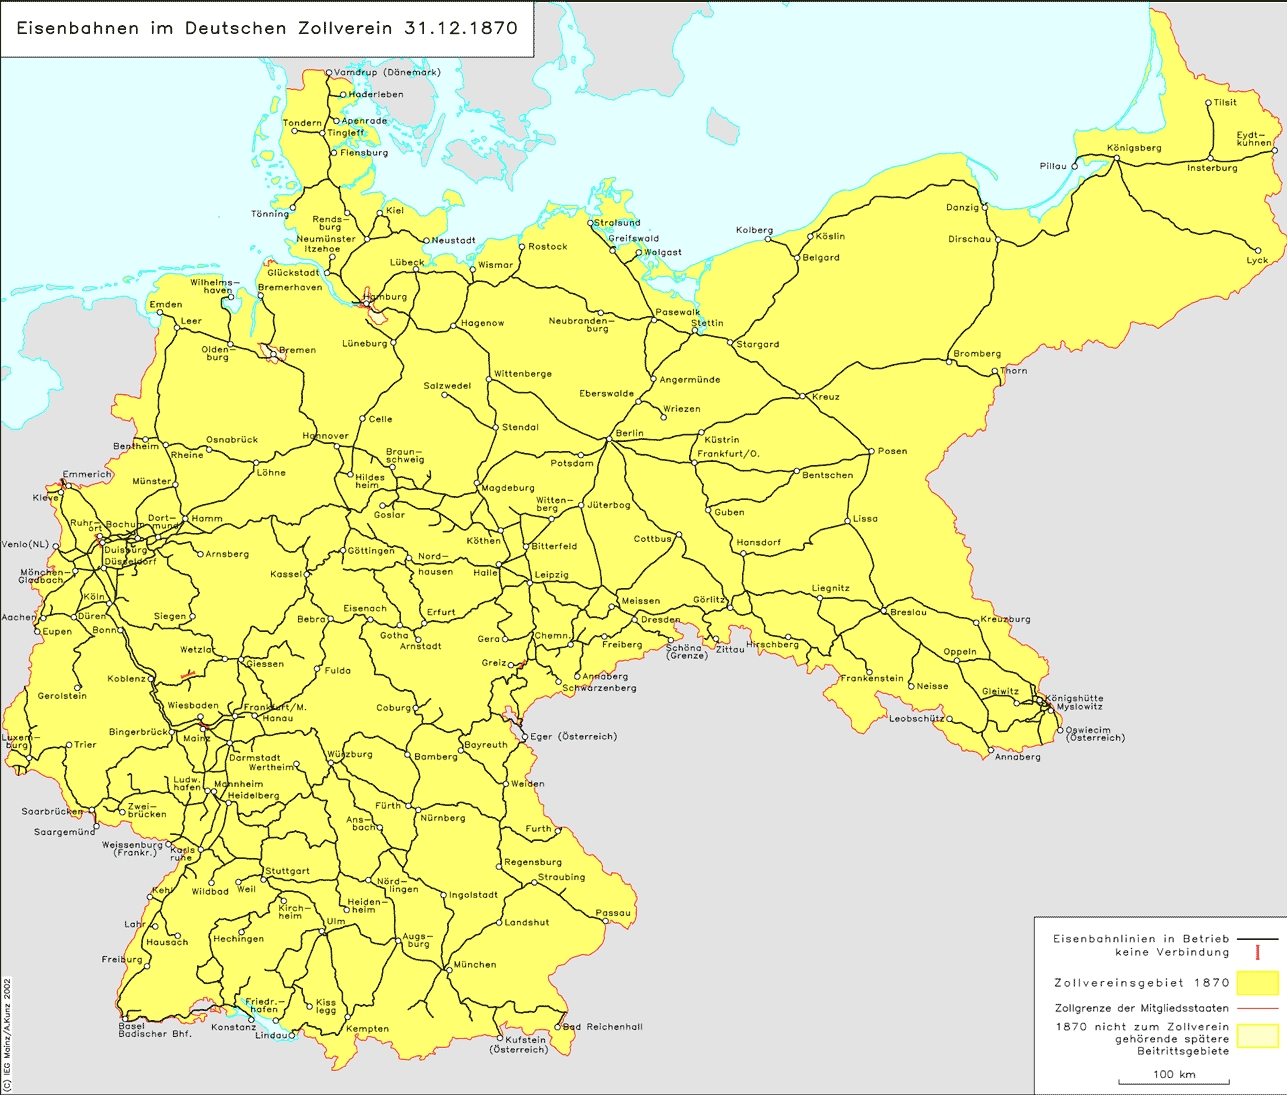 Historiana : Case Study : Looking for work – immigrants to ... on german industry map, german airport map, german language map, britrail map, european train route map, german political system, german country map, german alps map, german ocean map, german manufacturing map, german industrial map, german railway, german housing map, german ports map, rhine-ruhr on world map, german dialects map, german train system map, german land map, german railroad map, german food map,